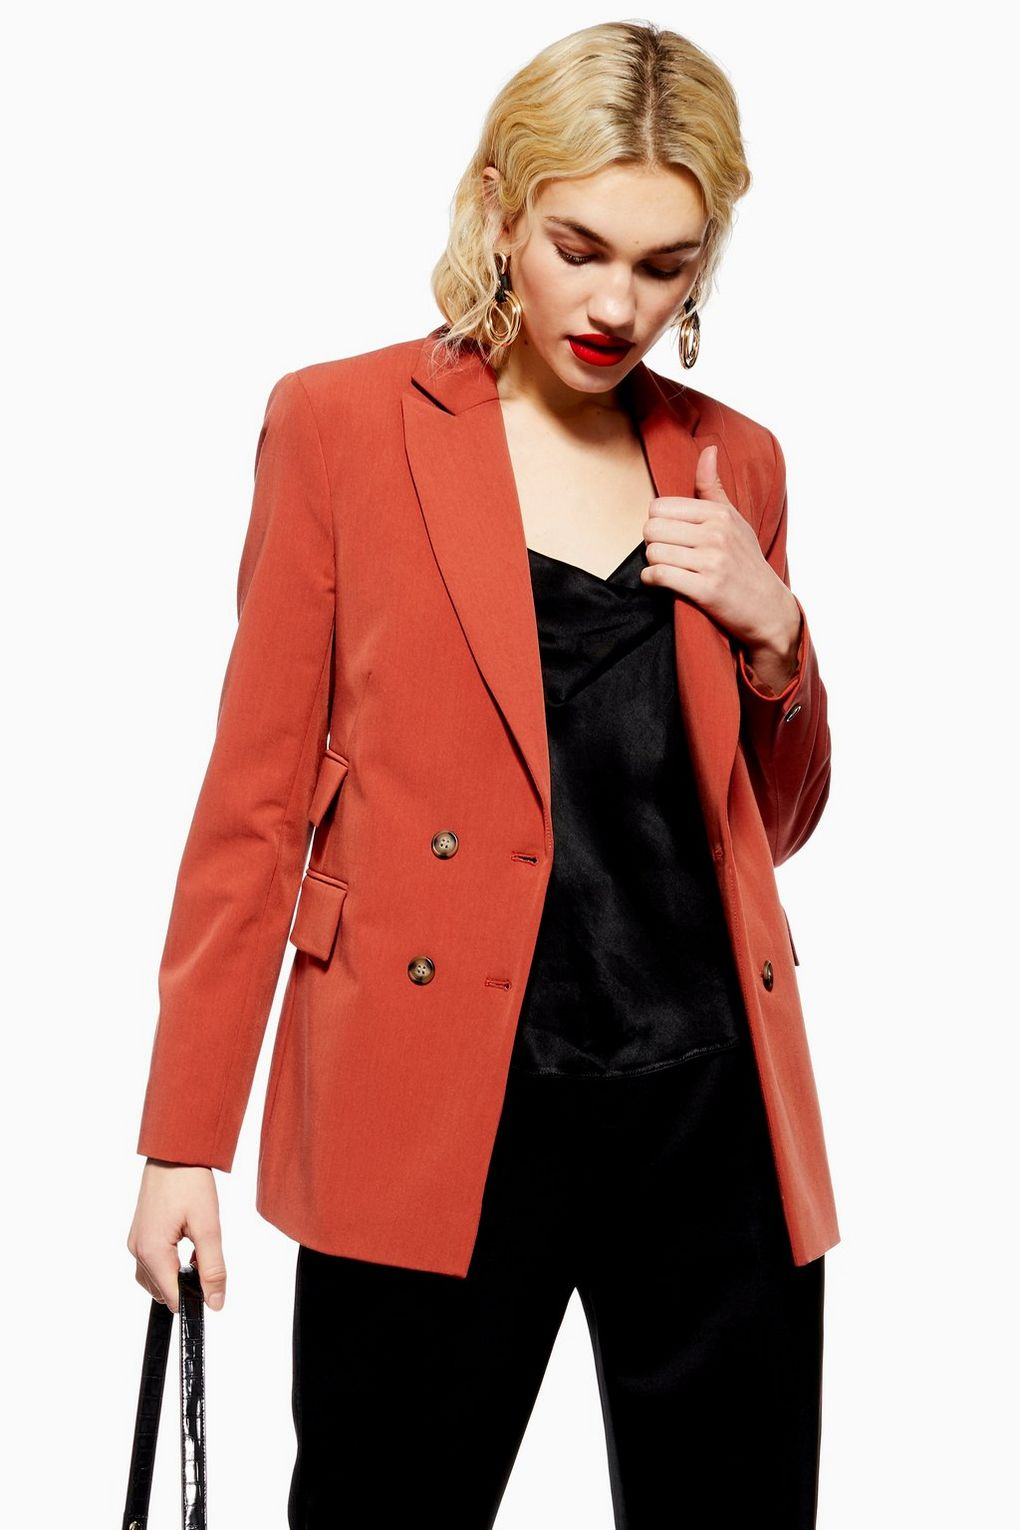 Double Breasted Suit Jacket - Jackets & Coats - Clothing